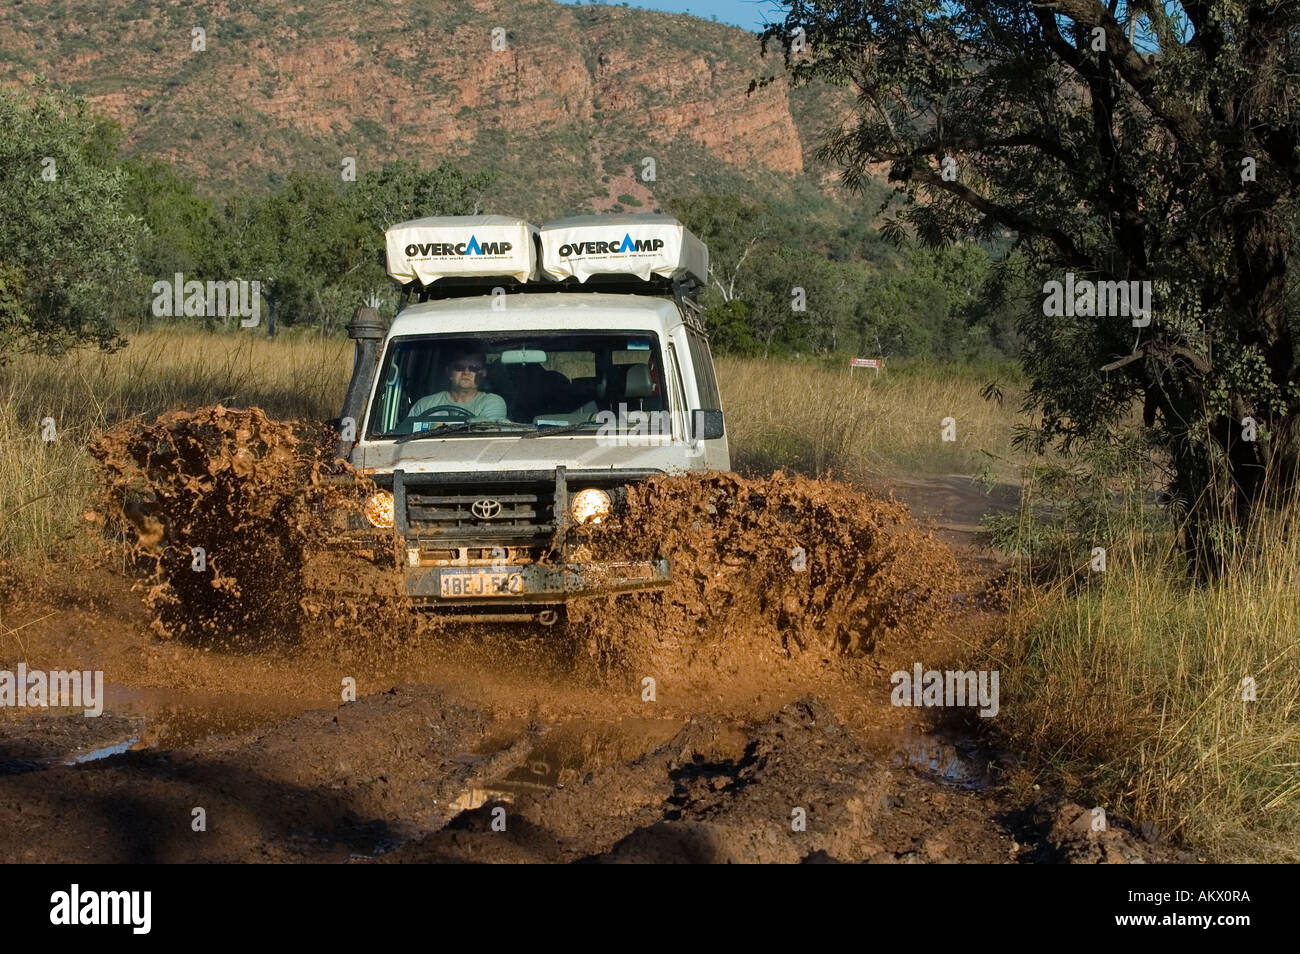 Offroad vehicle driving through mud, Gibb Road, Northern Territory, Australia - Stock Image